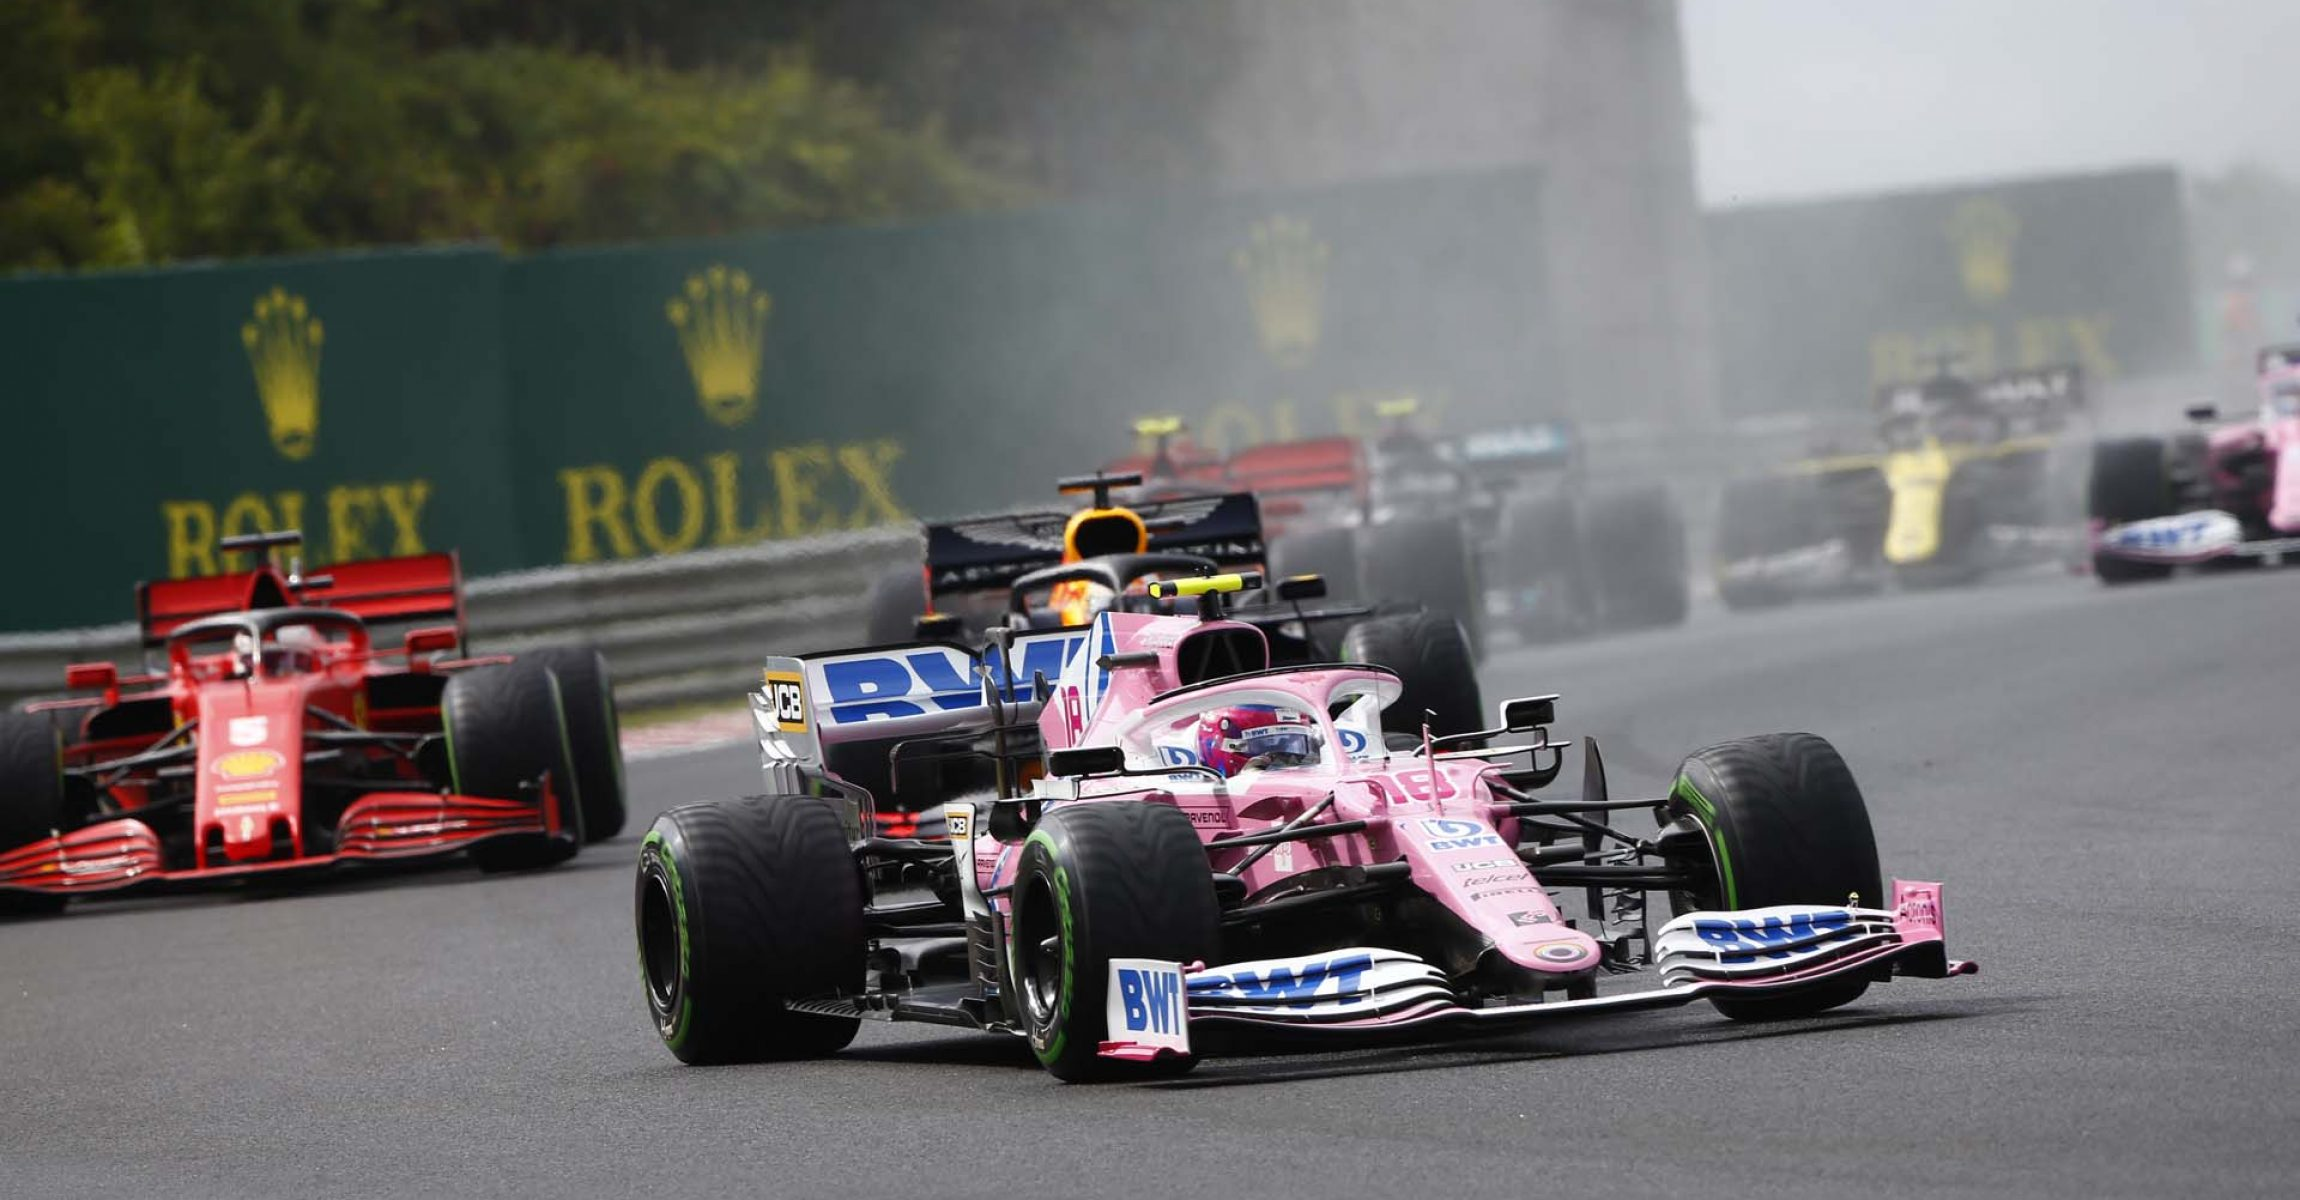 Lance Stroll, Racing Point RP20, leads Max Verstappen, Red Bull Racing RB16, and Sebastian Vettel, Ferrari SF1000